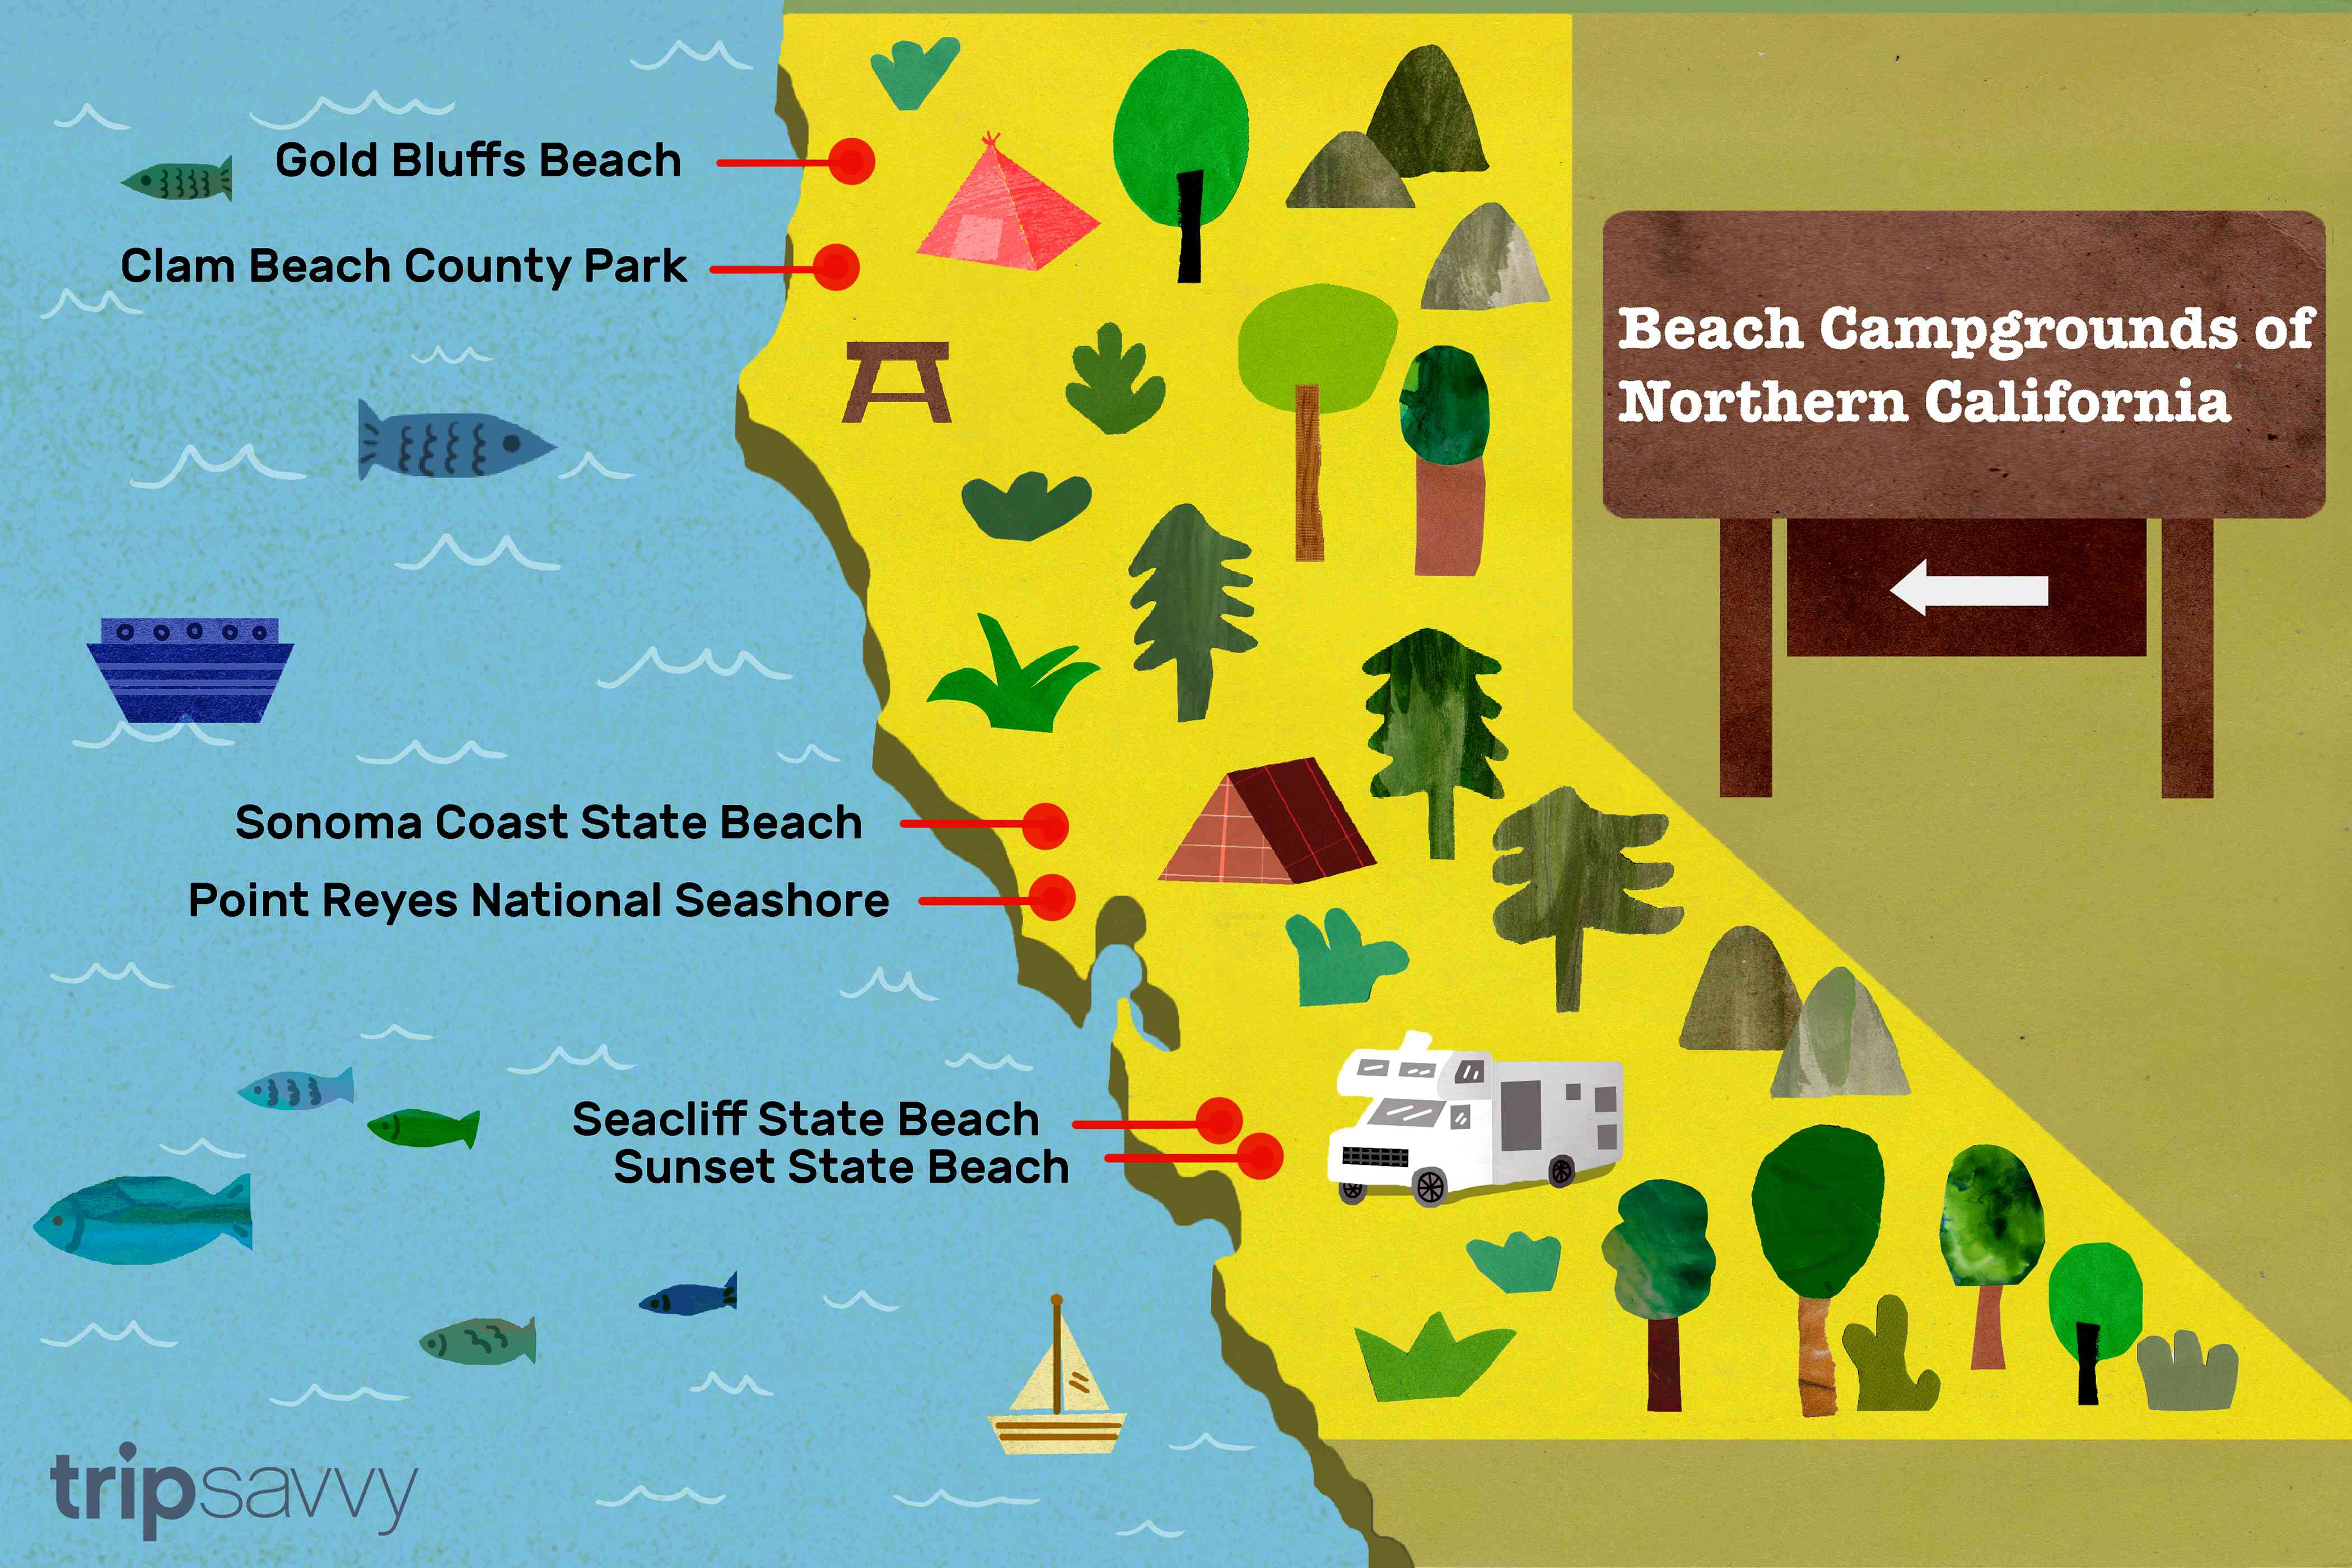 an illustrated maps of the beach campgrounds in Northern California